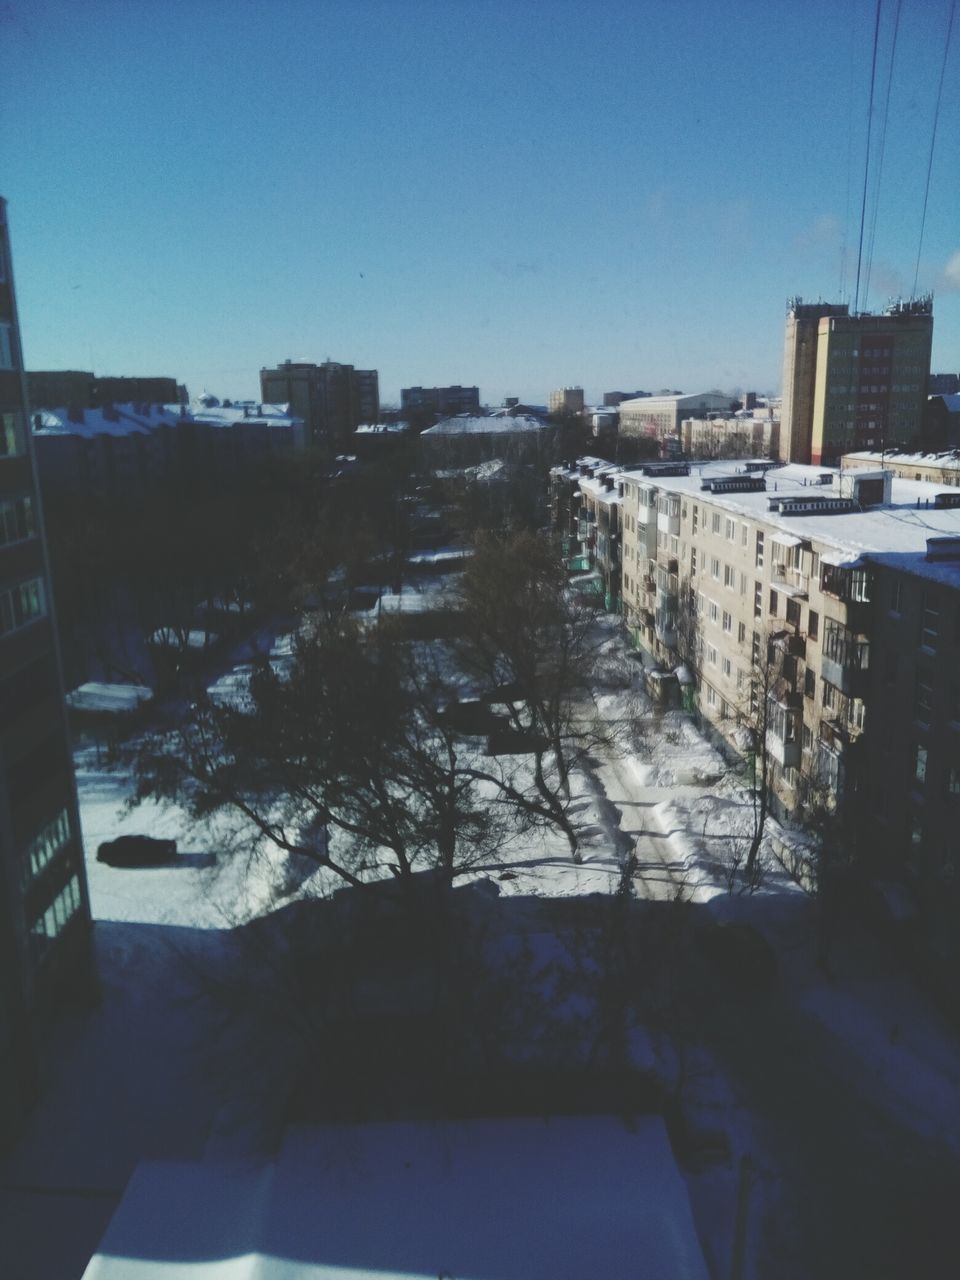 architecture, building exterior, city, clear sky, cityscape, no people, winter, built structure, snow, outdoors, day, nature, sky